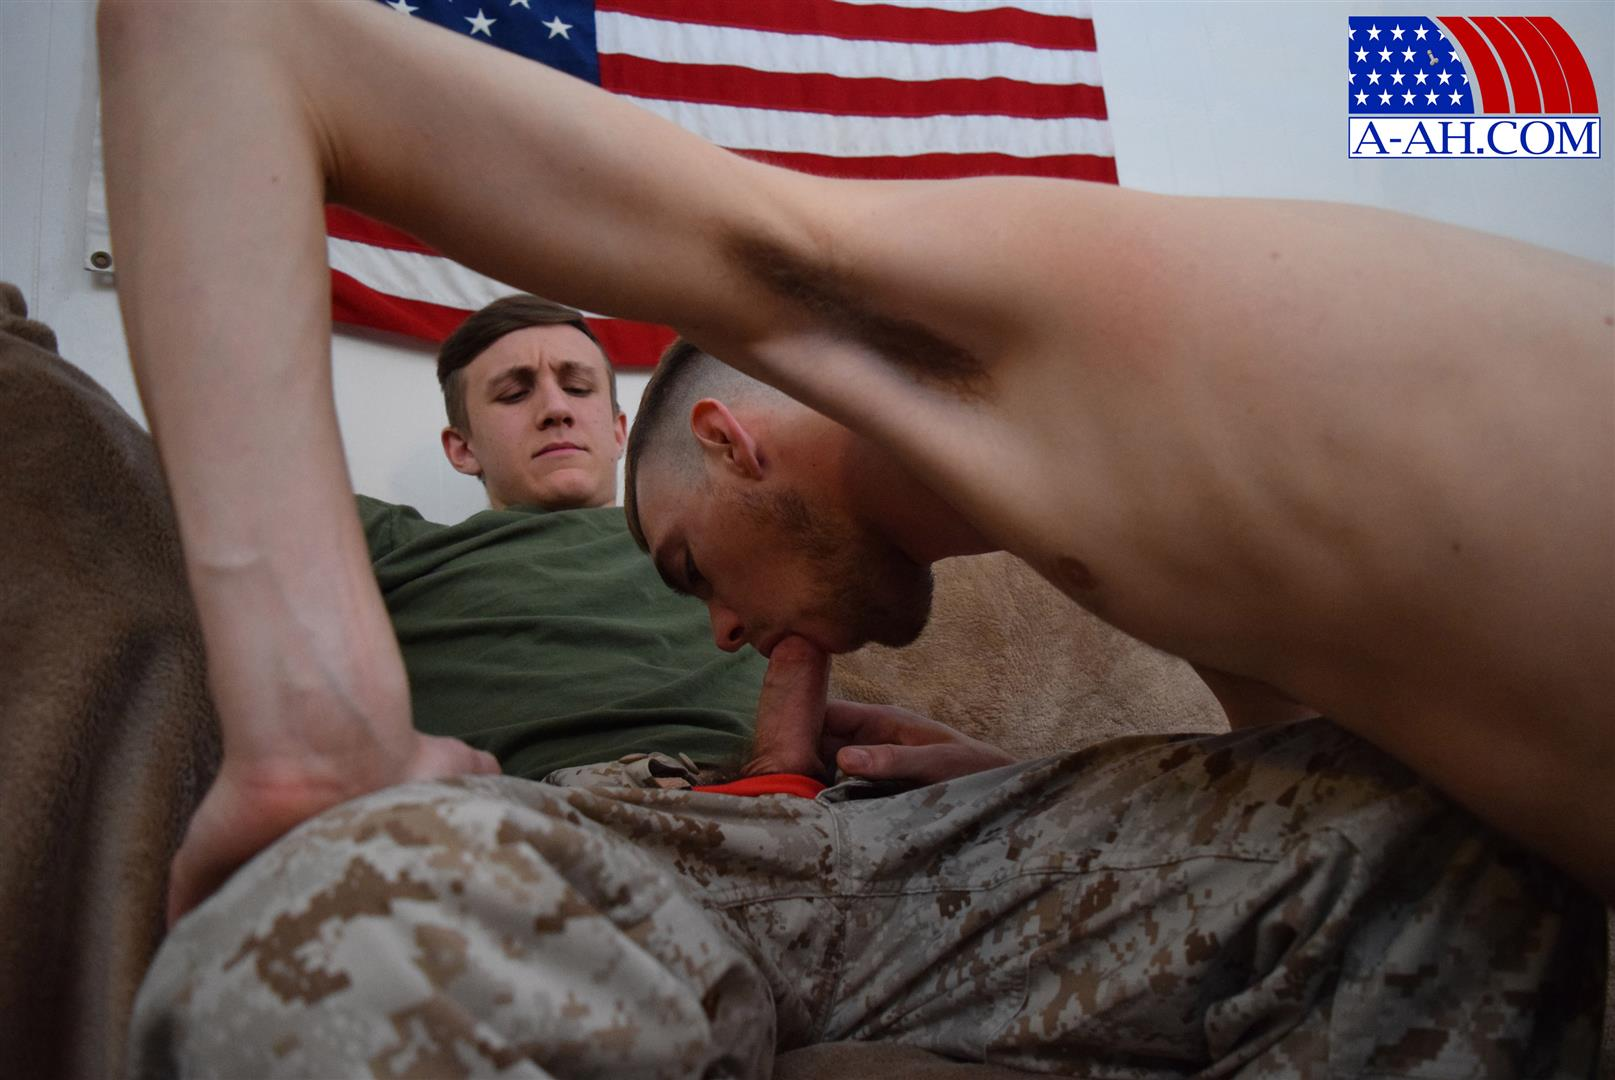 All American Heroes Jett and Alex Naked Army Guy Gets First Gay Blowjob Amateur Gay Porn 05 Straight Army Private Gets A Foot Massage and His First Gay Blow Job